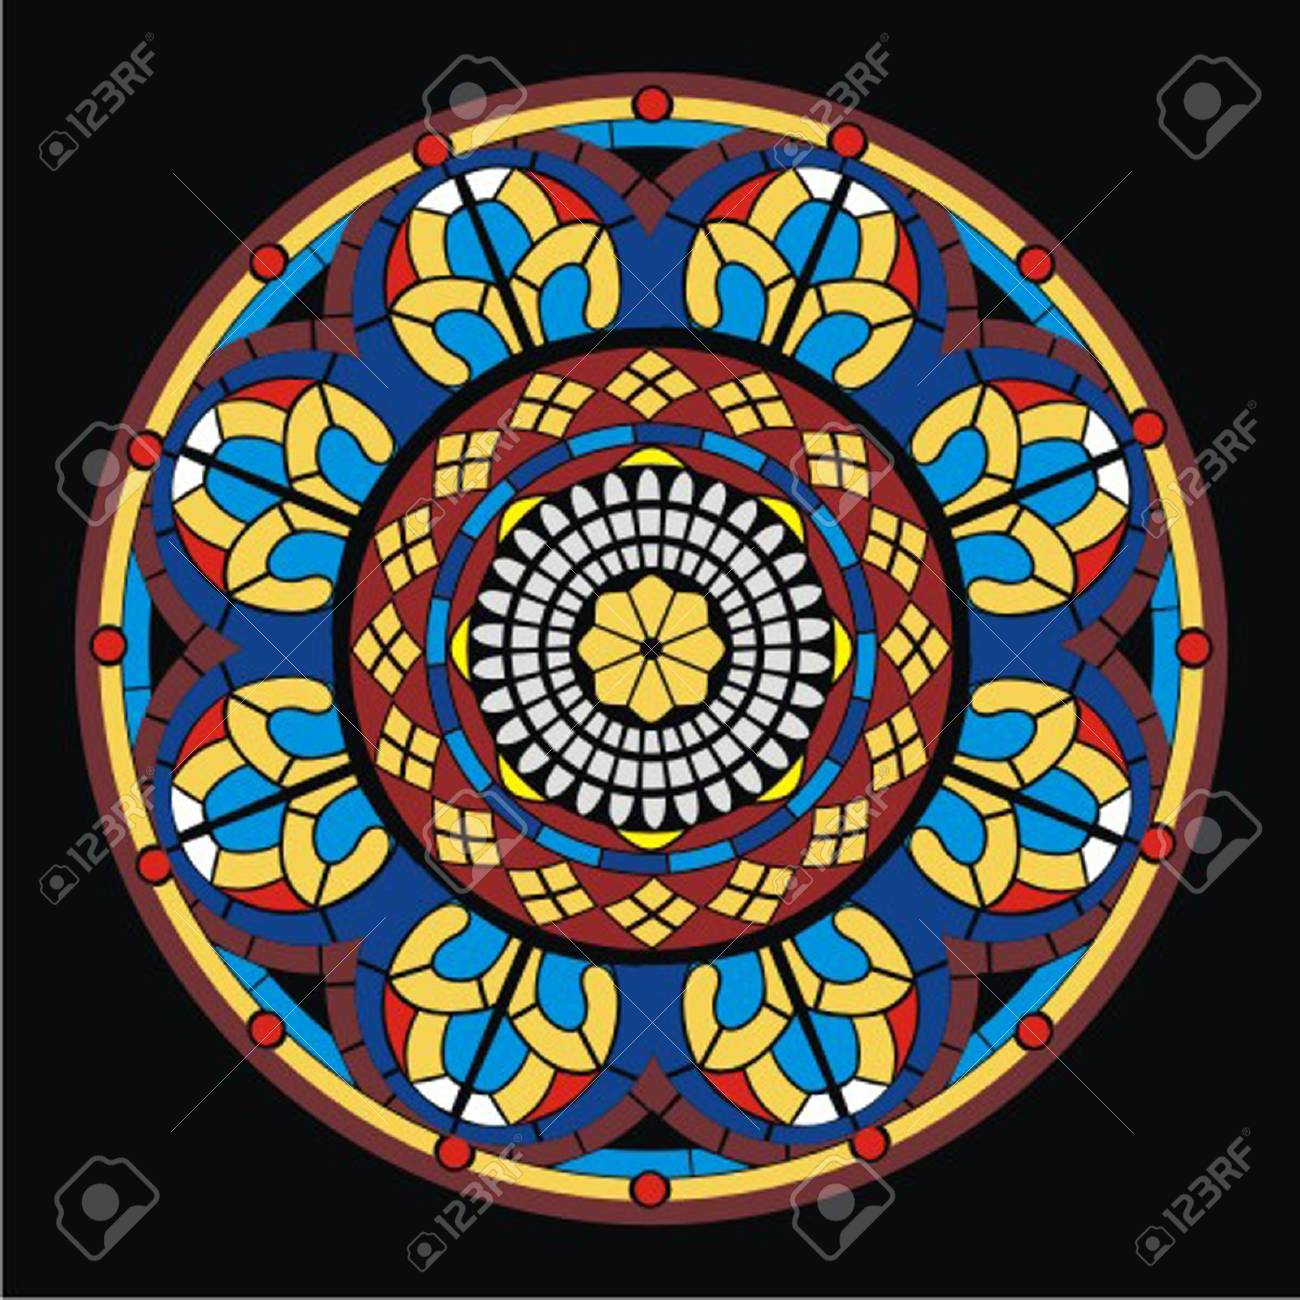 stained_glass_window Stock Vector - 13438185